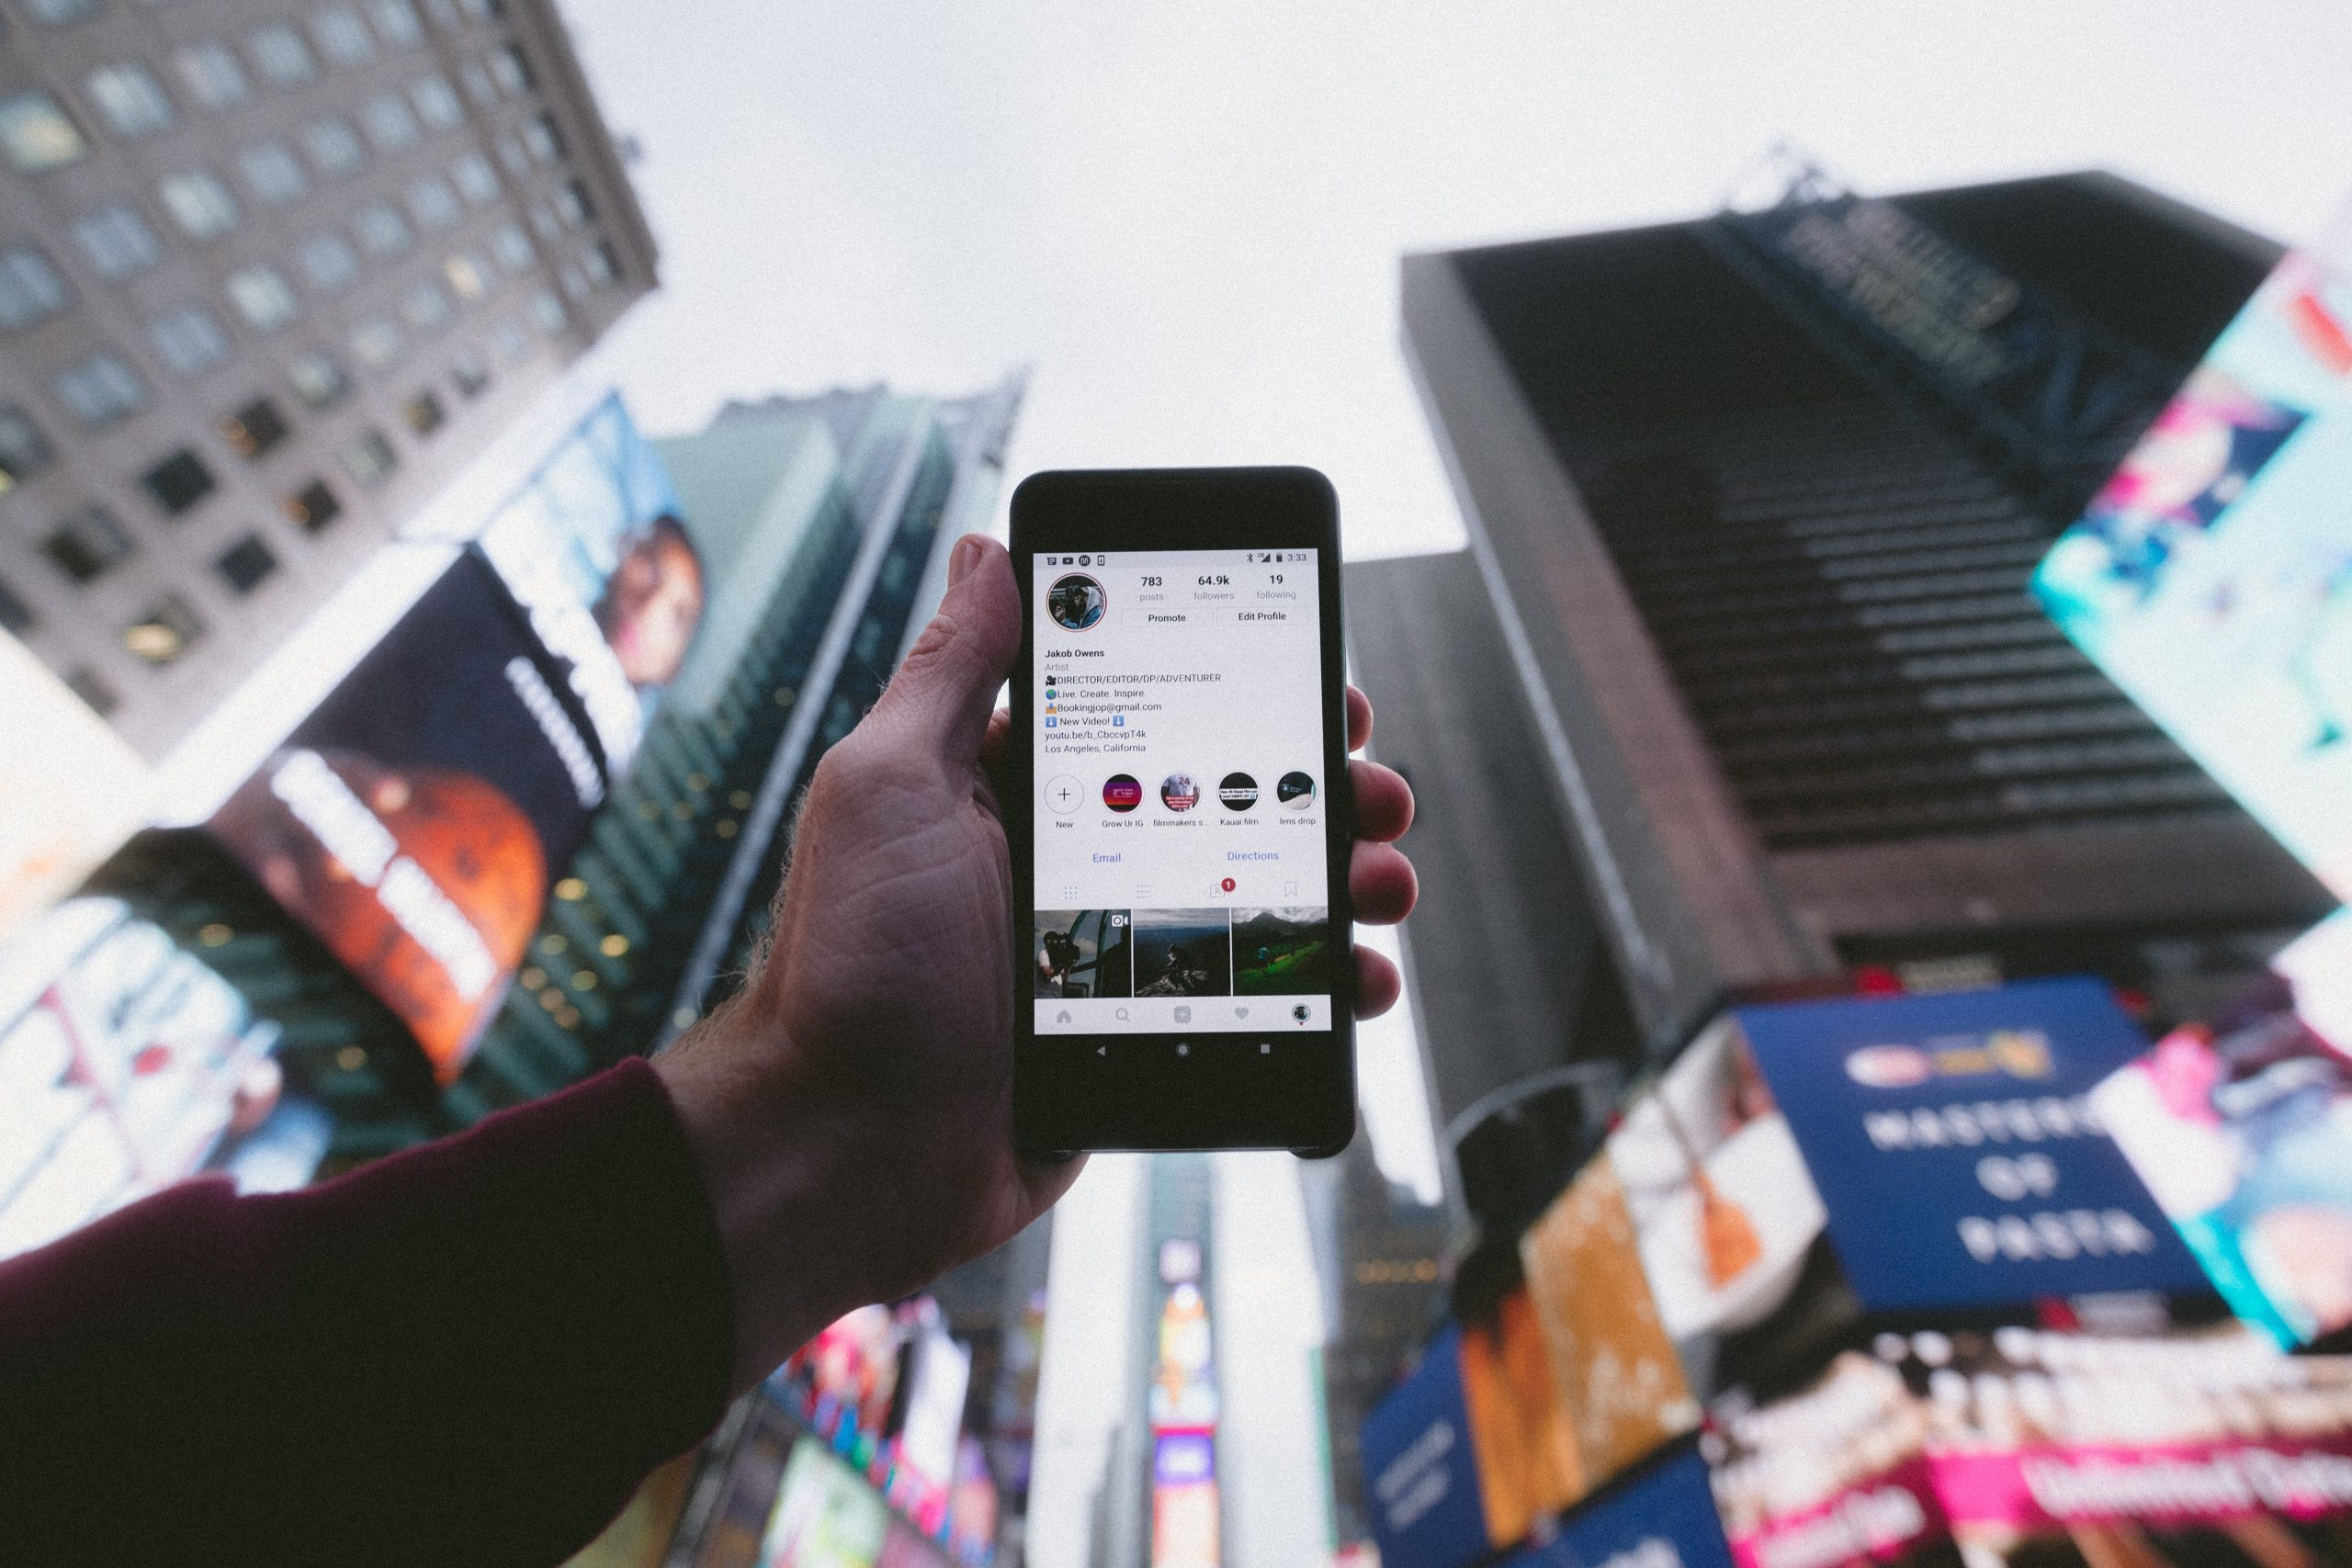 A person holds up a mobile phone against a backdrop of skyscrapers.